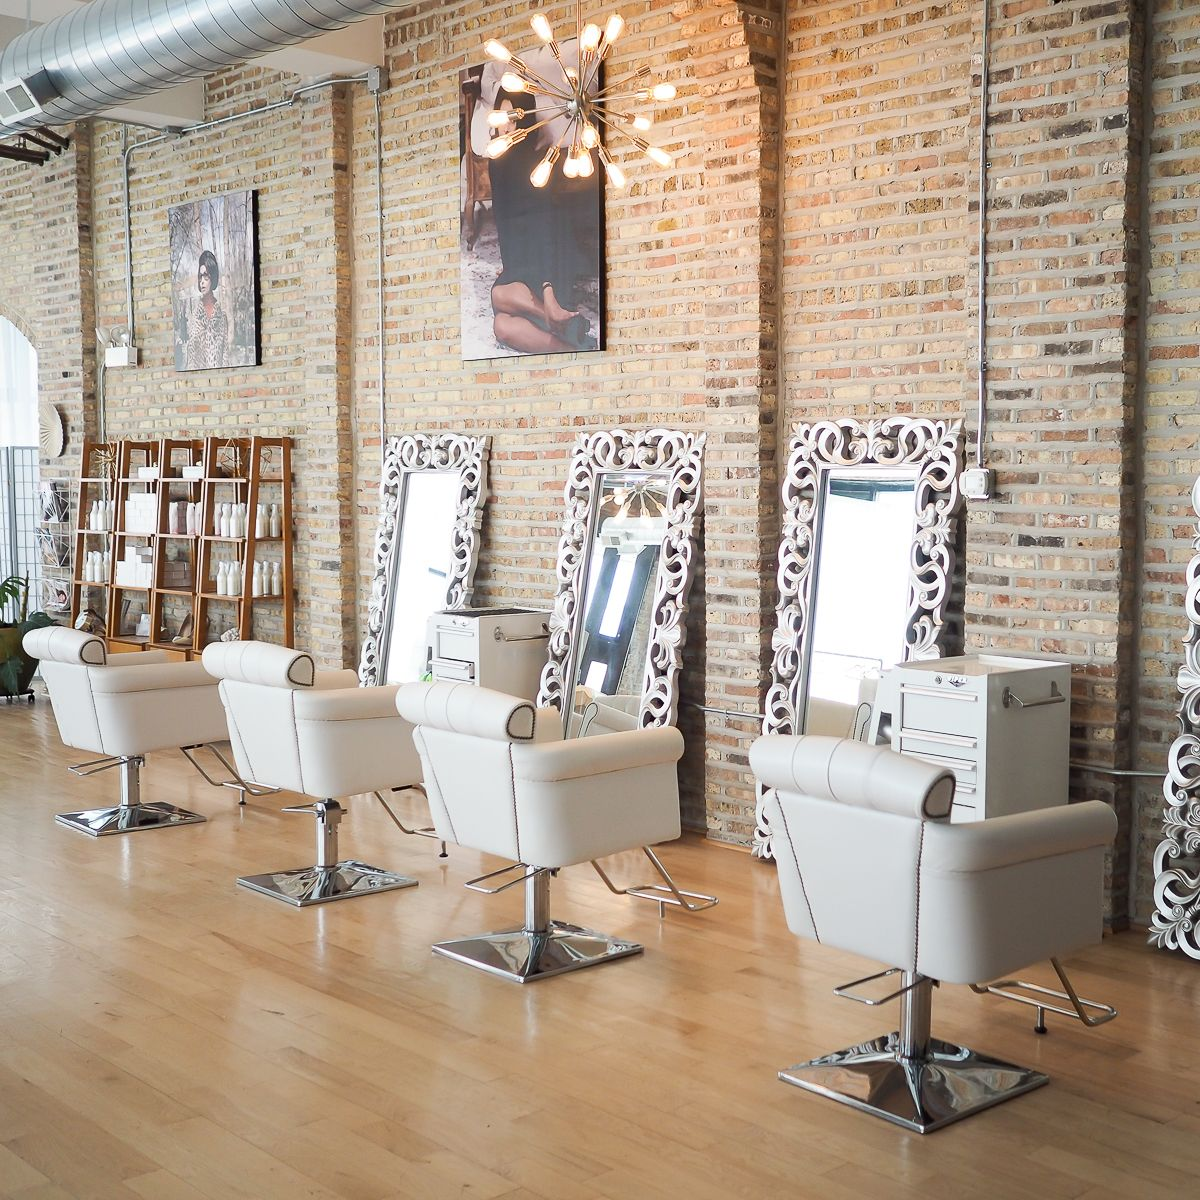 Our Chicago Makeup Studio We Offer Classes Weddings Bridal Airbrush